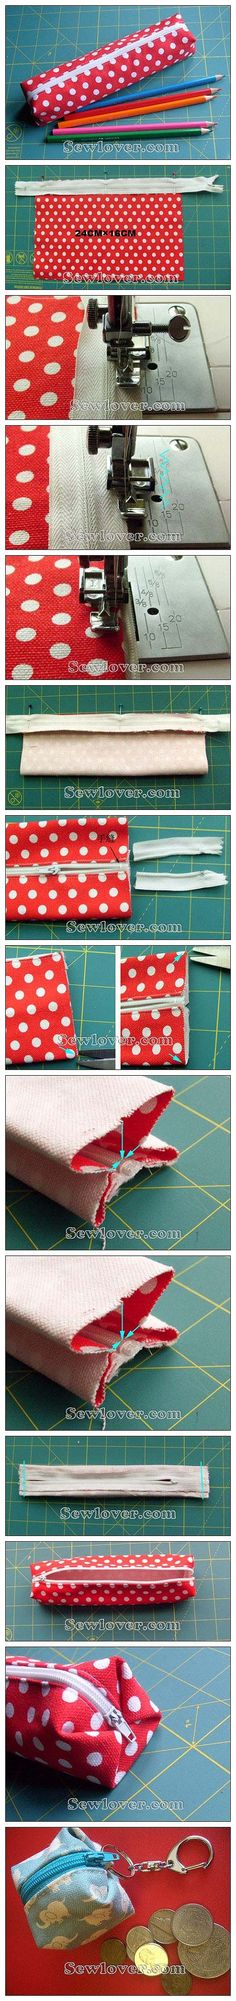 Homemade pencil bag